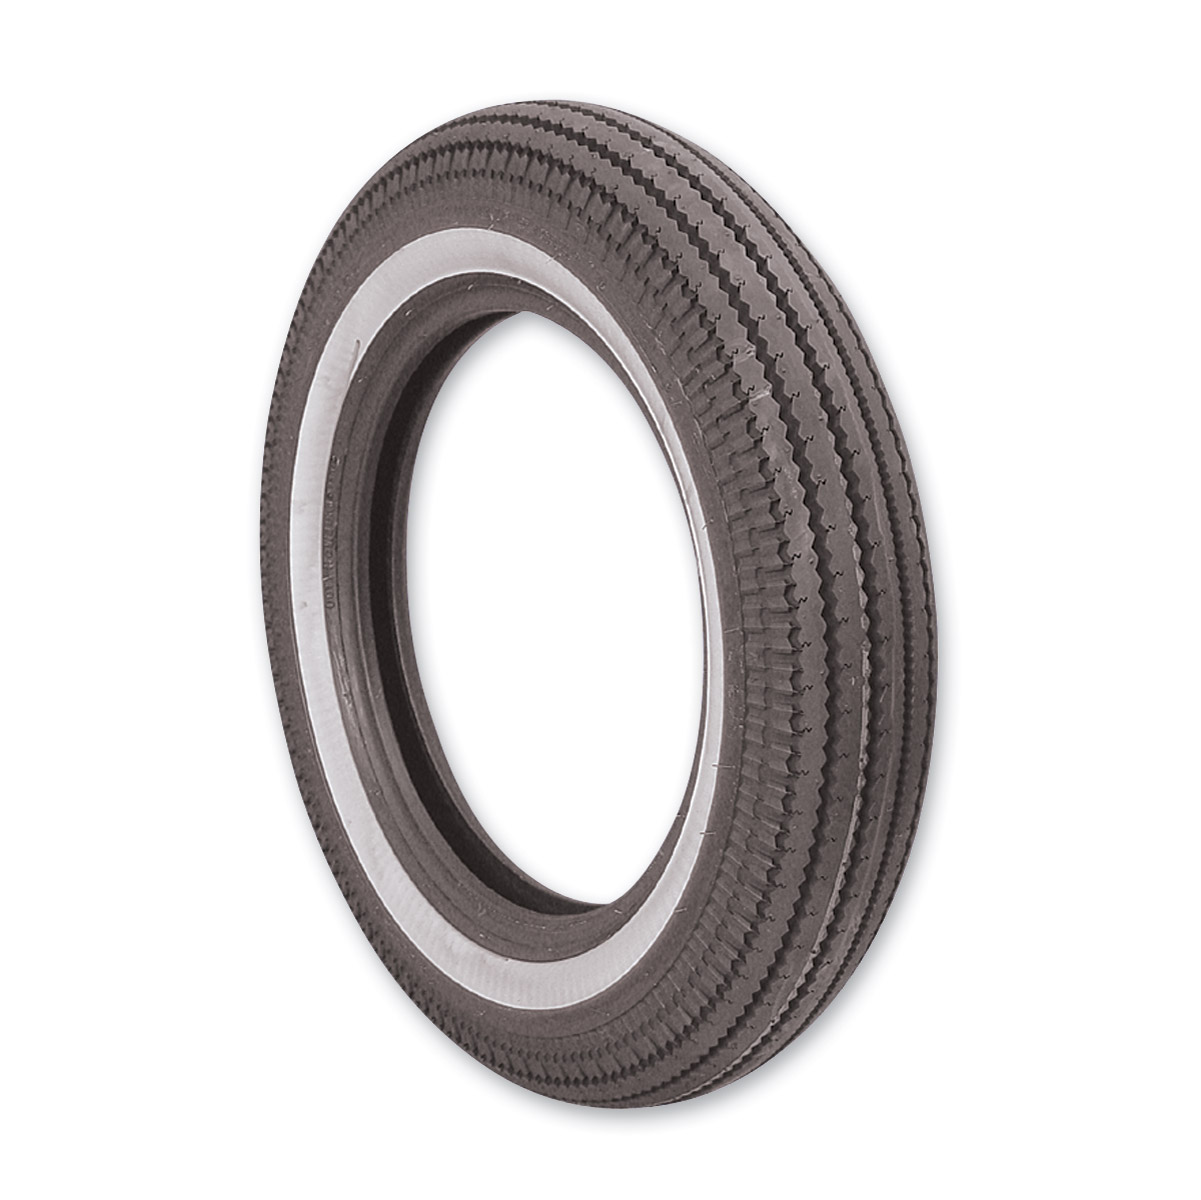 Shinko 270 5.00-16 Narrow Whitewall Front/Rear Tire